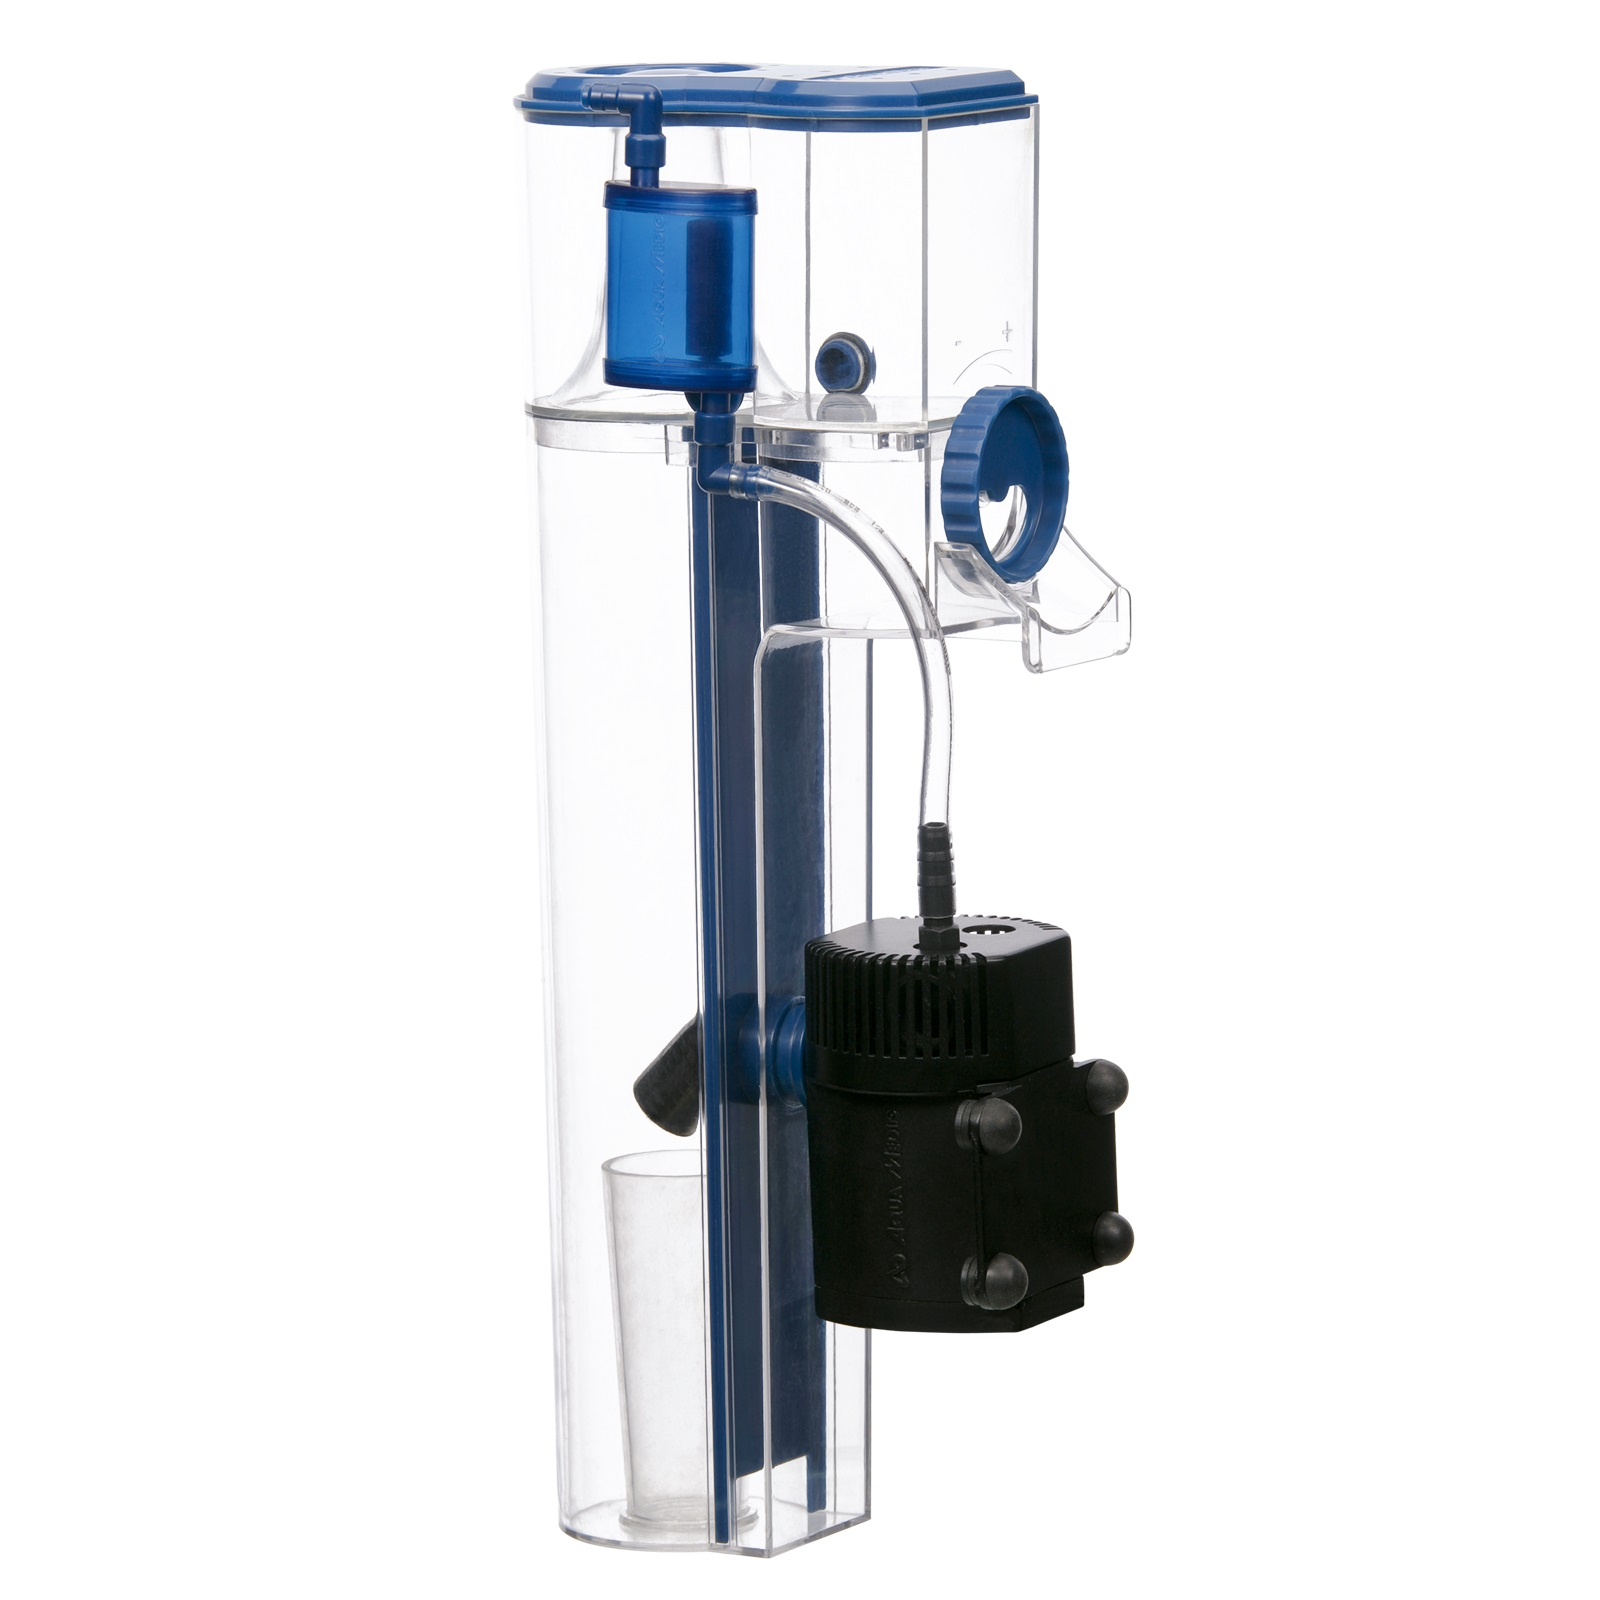 Aquamedic Blue Protein Skimmer 500 Pump Aq750 Impeller